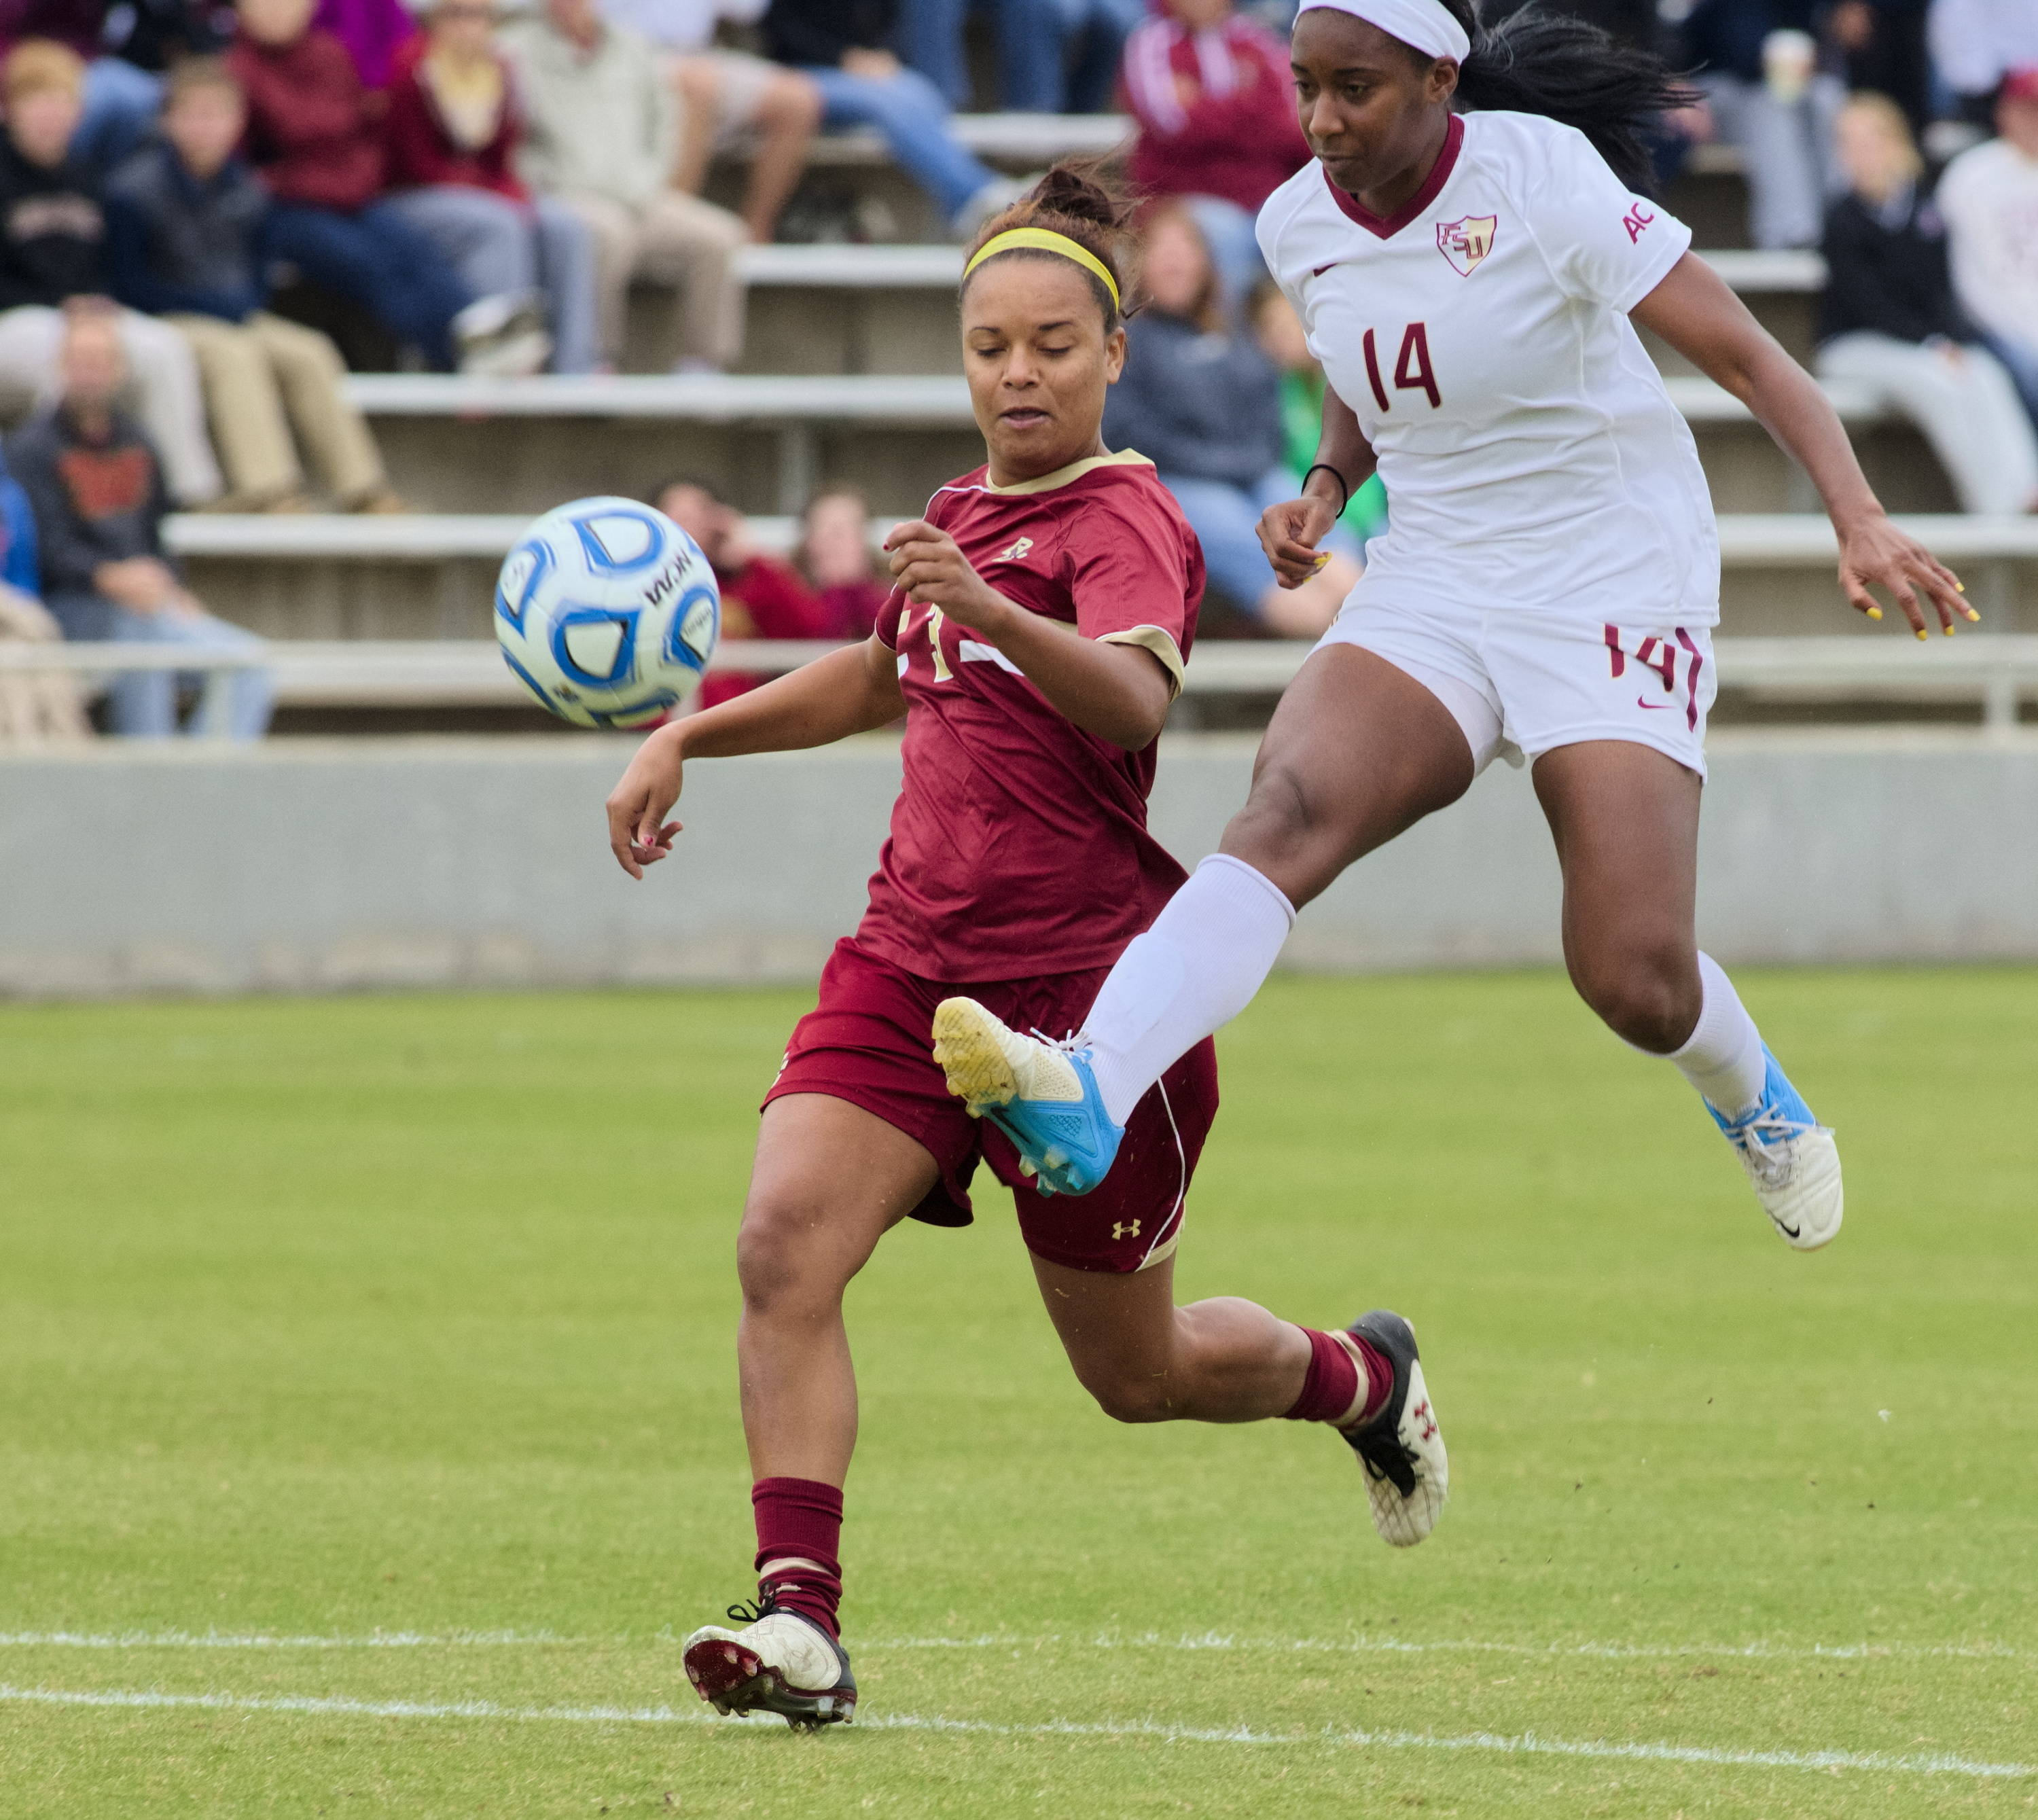 Tiffany McCarty (14) scoring, FSU vs BC, ACC Tournament, 10/28/12. (Photo by Steve Musco)